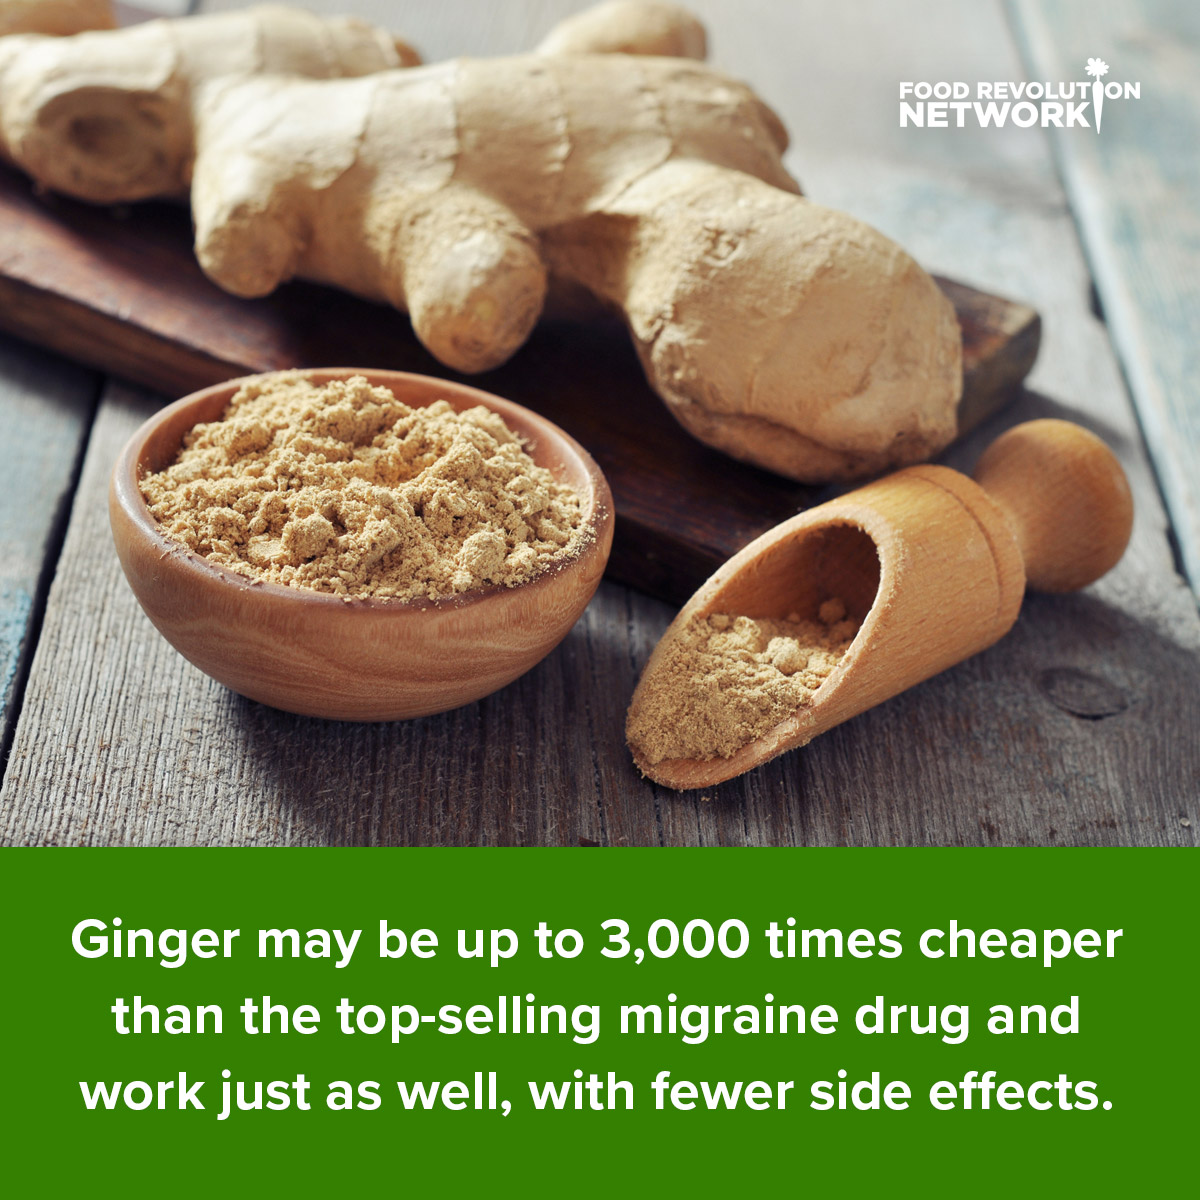 Ginger may be up to 3,000 times cheaper than the top-selling migraine drug and work just as well, with fewer benefits.